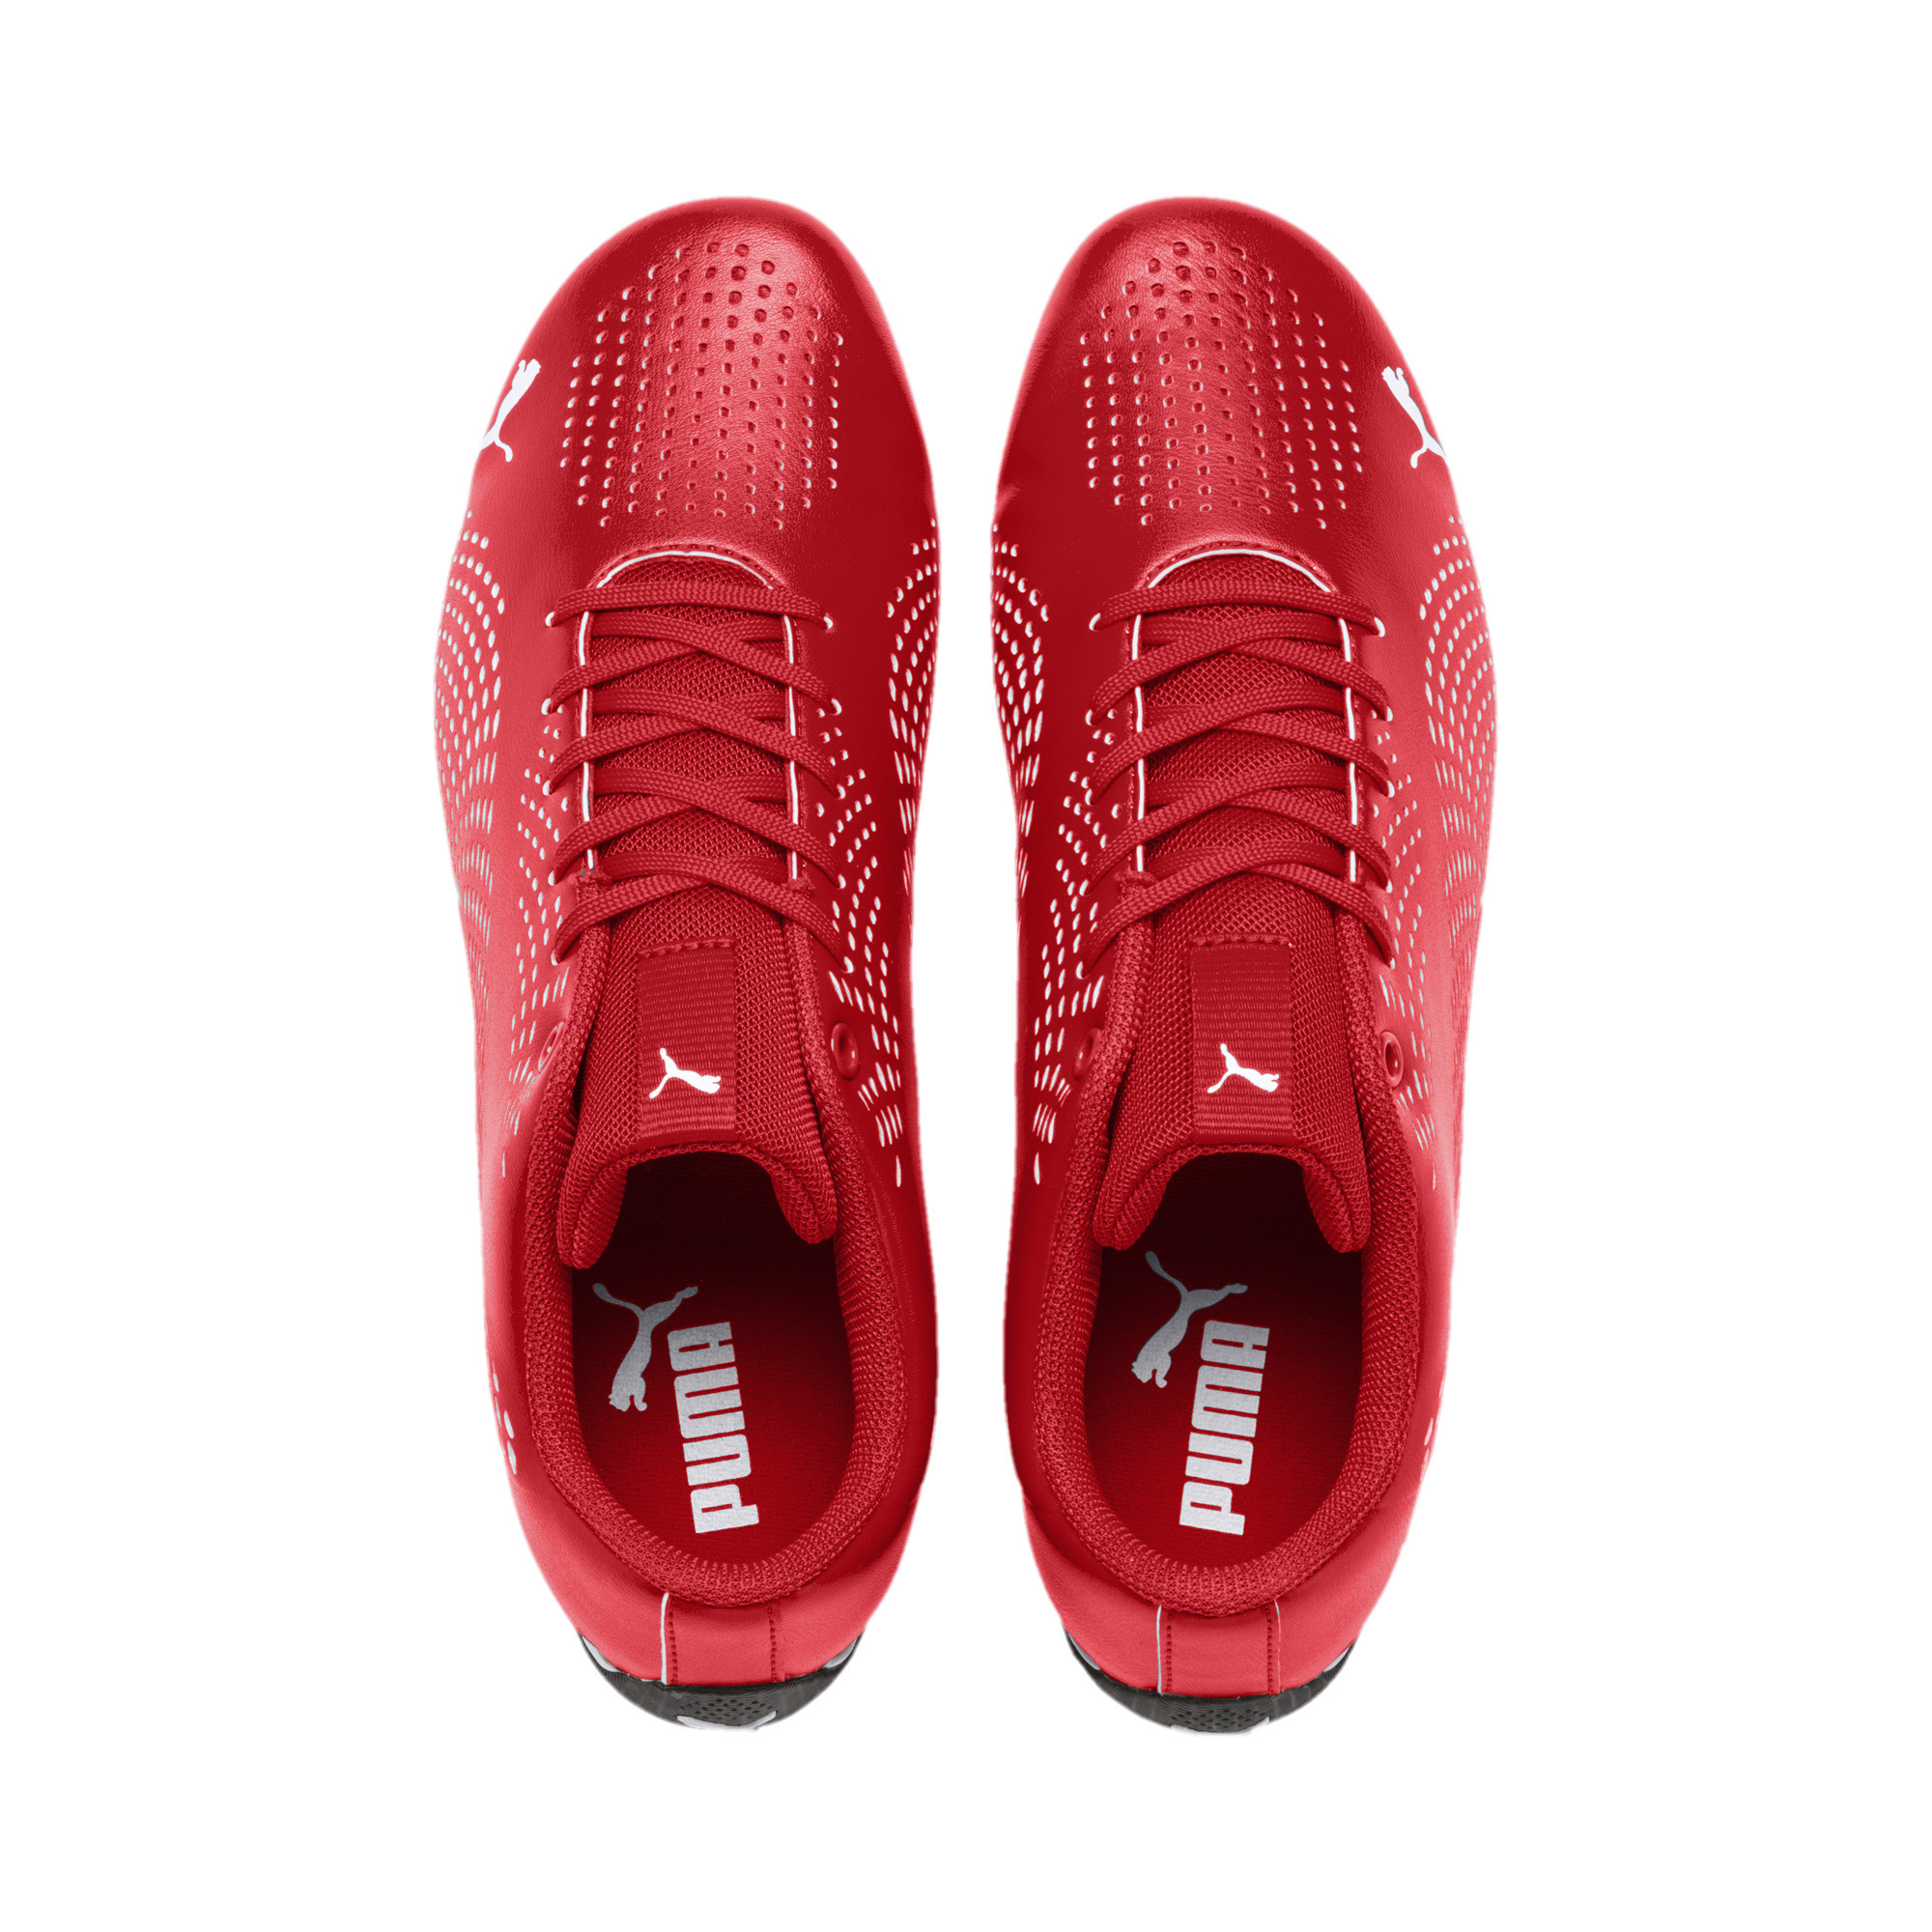 PUMA-Men-039-s-Scuderia-Ferrari-Drift-Cat-5-Ultra-II-Shoes thumbnail 15